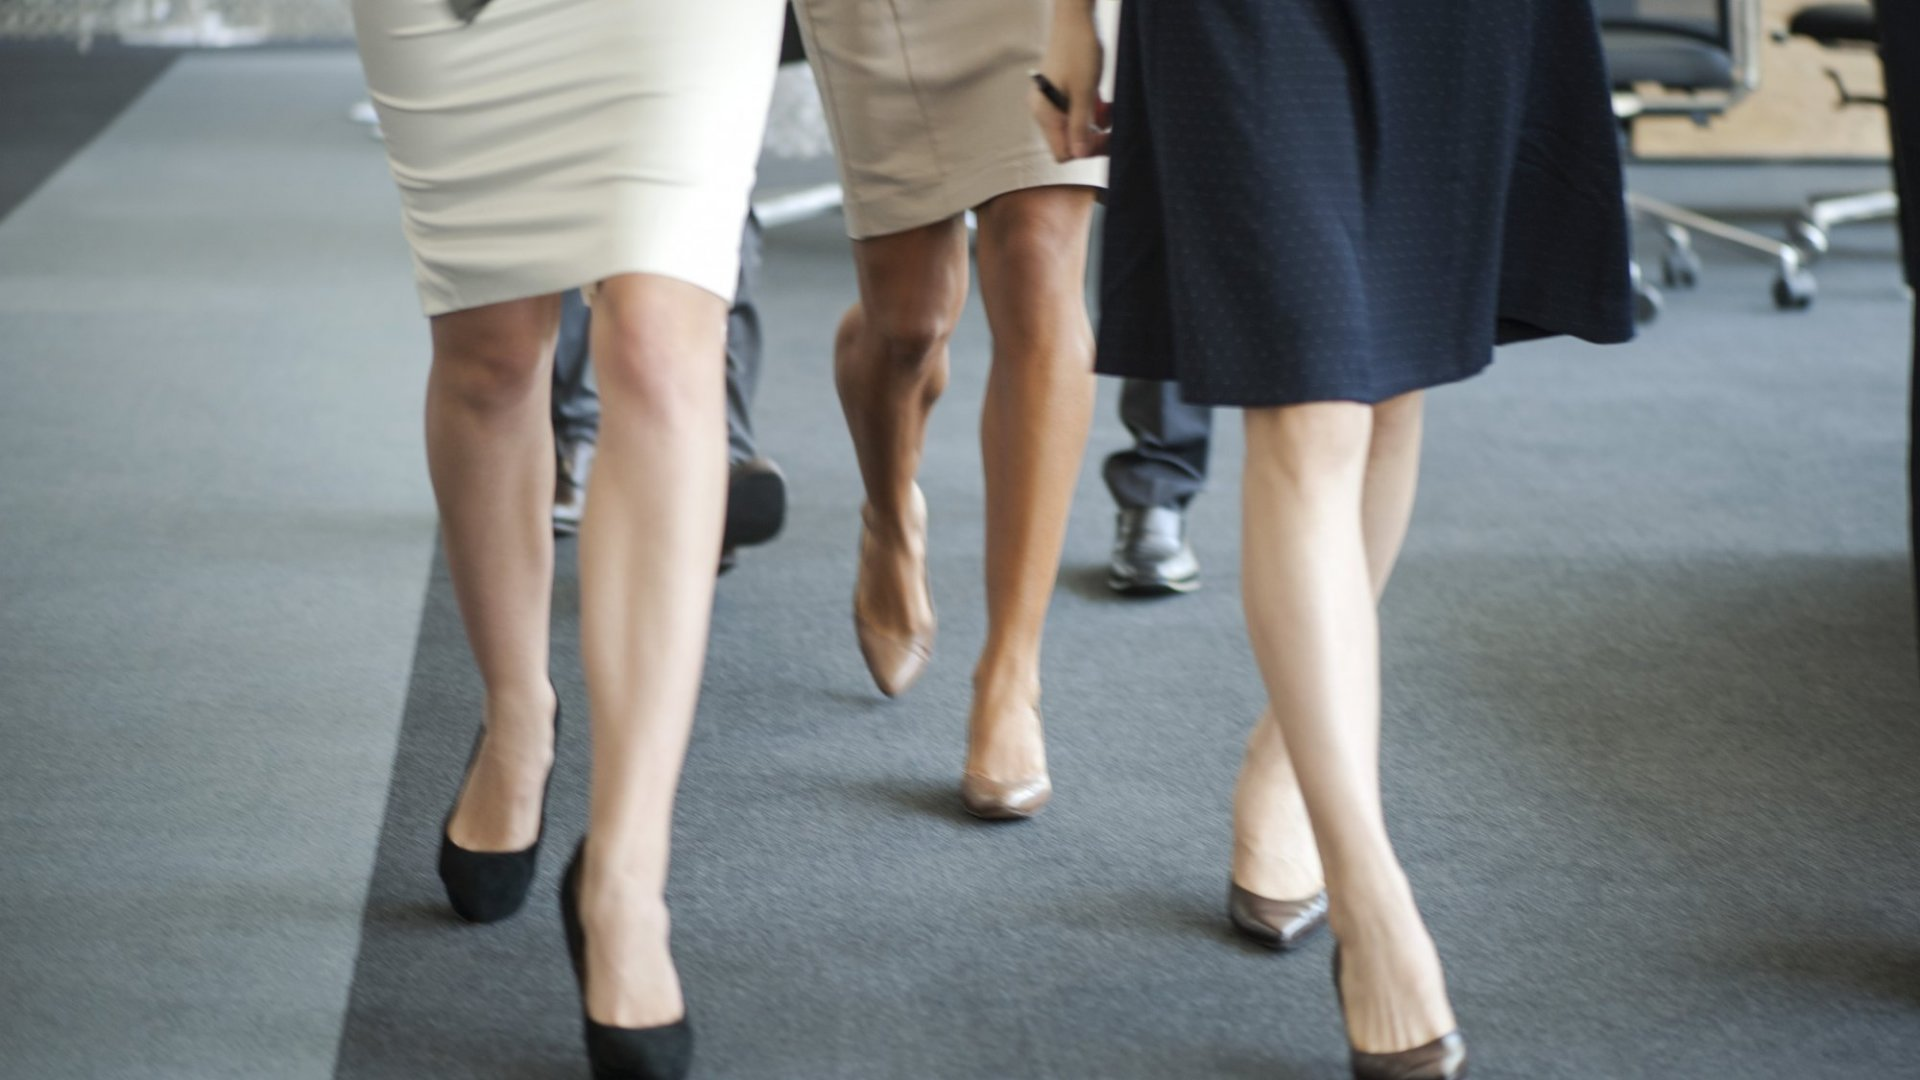 These Men in Skirts and Dresses Protested Workplace Dress Codes. Lo and Behold, They Won